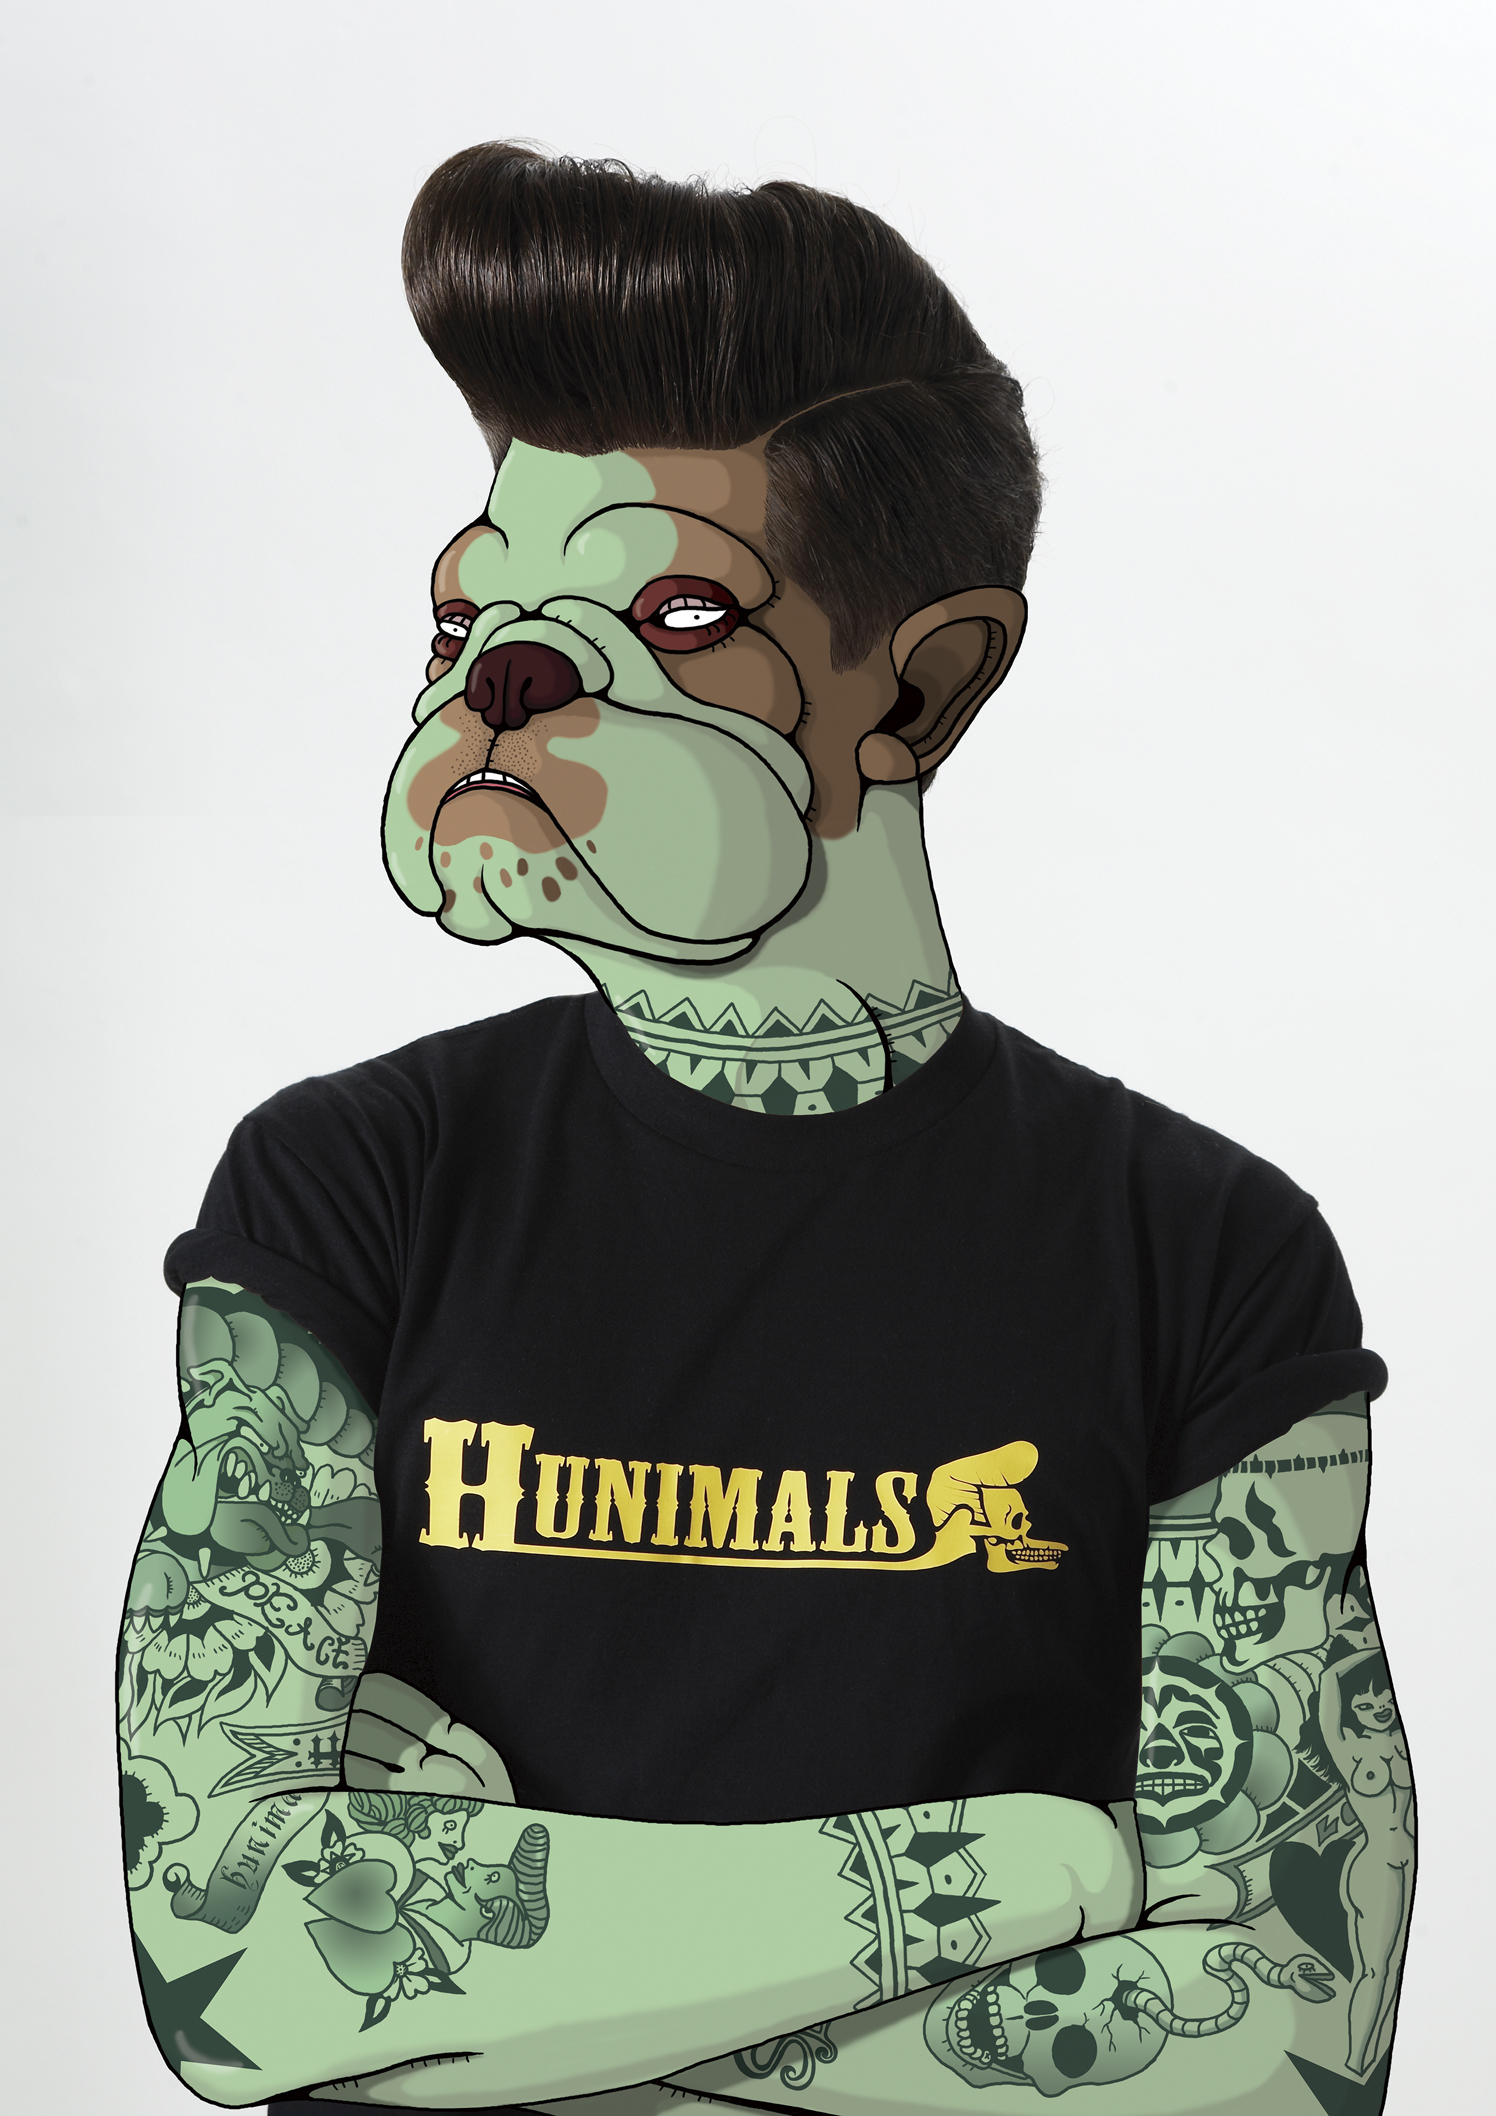 Hunimals Thomas